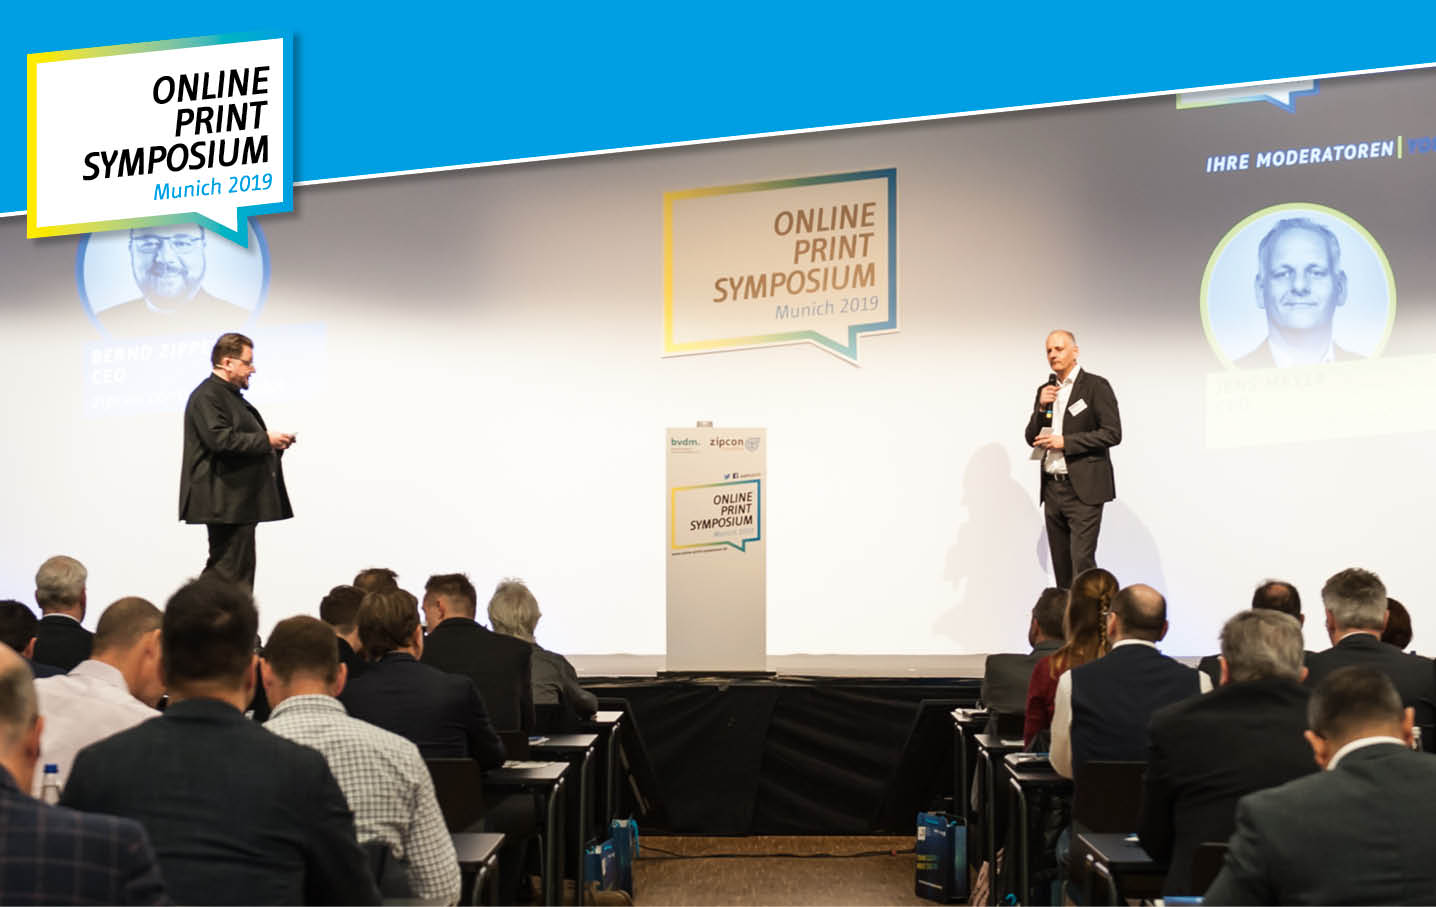 Online Print Symposium 2019: Das Best-of-Video #OPS2019